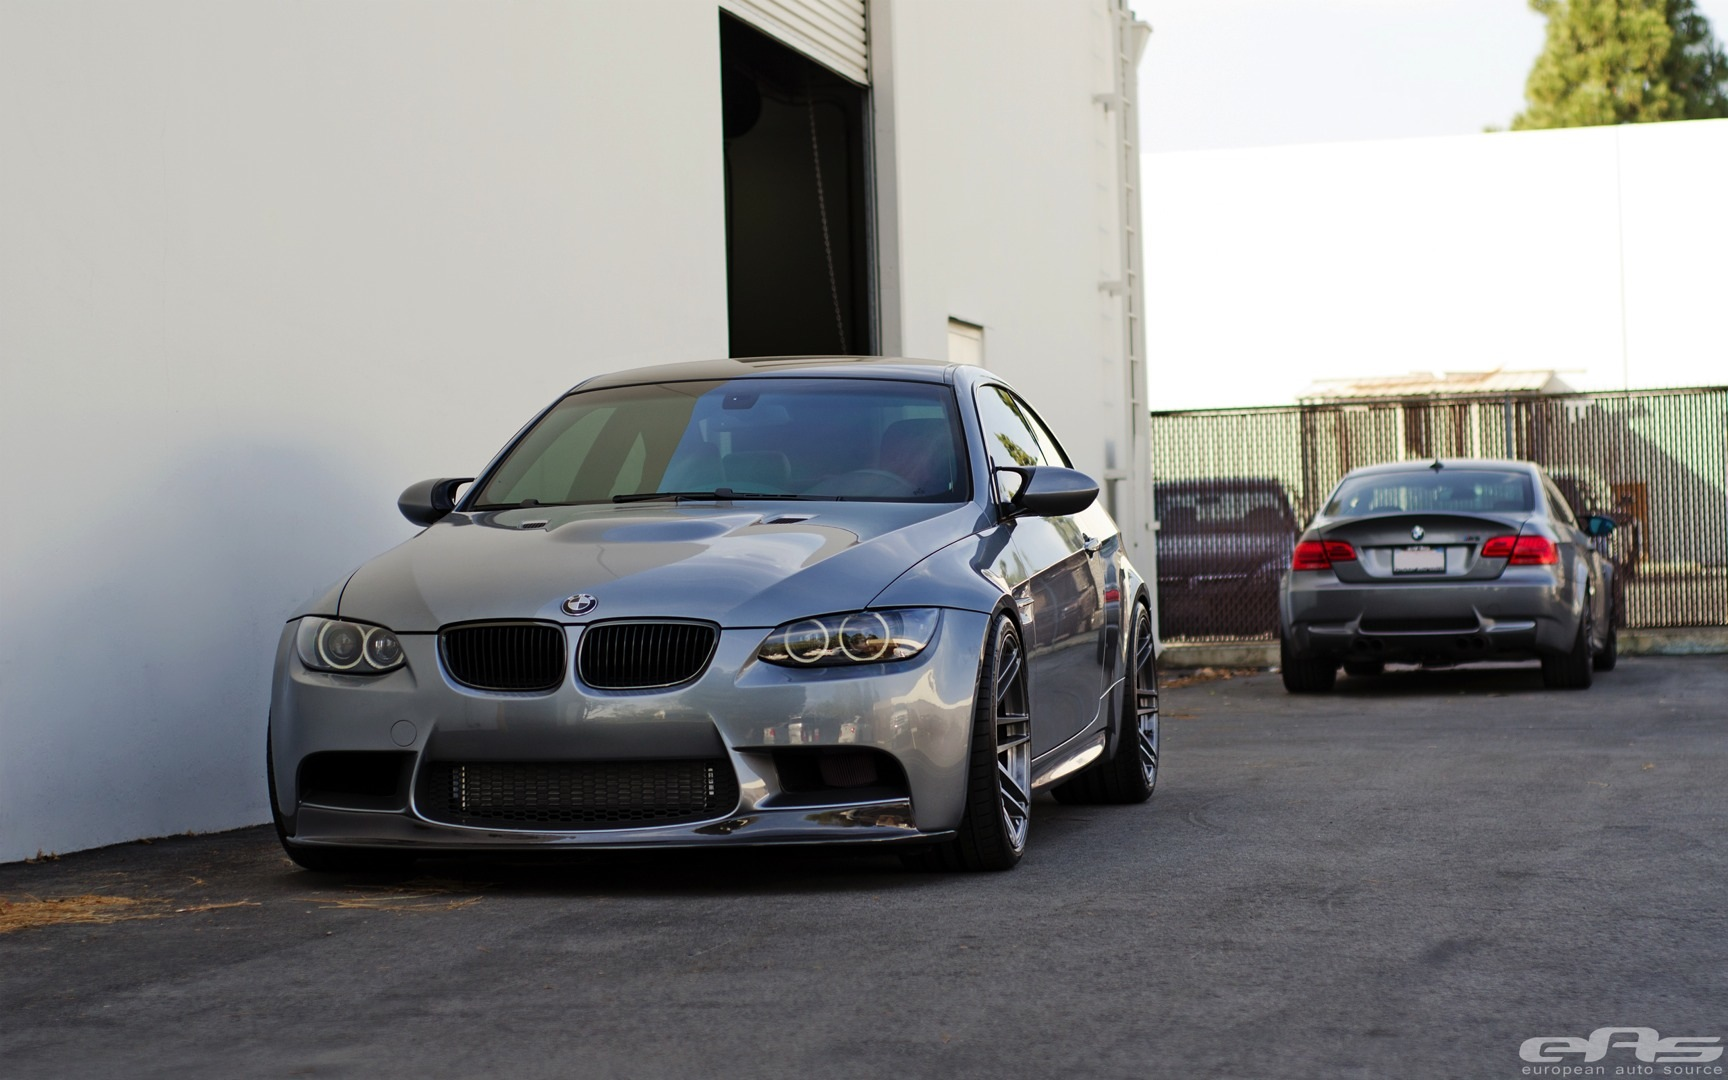 Space Grey Bmw E92 M3 Gets Supercharged And Neochrome Lug